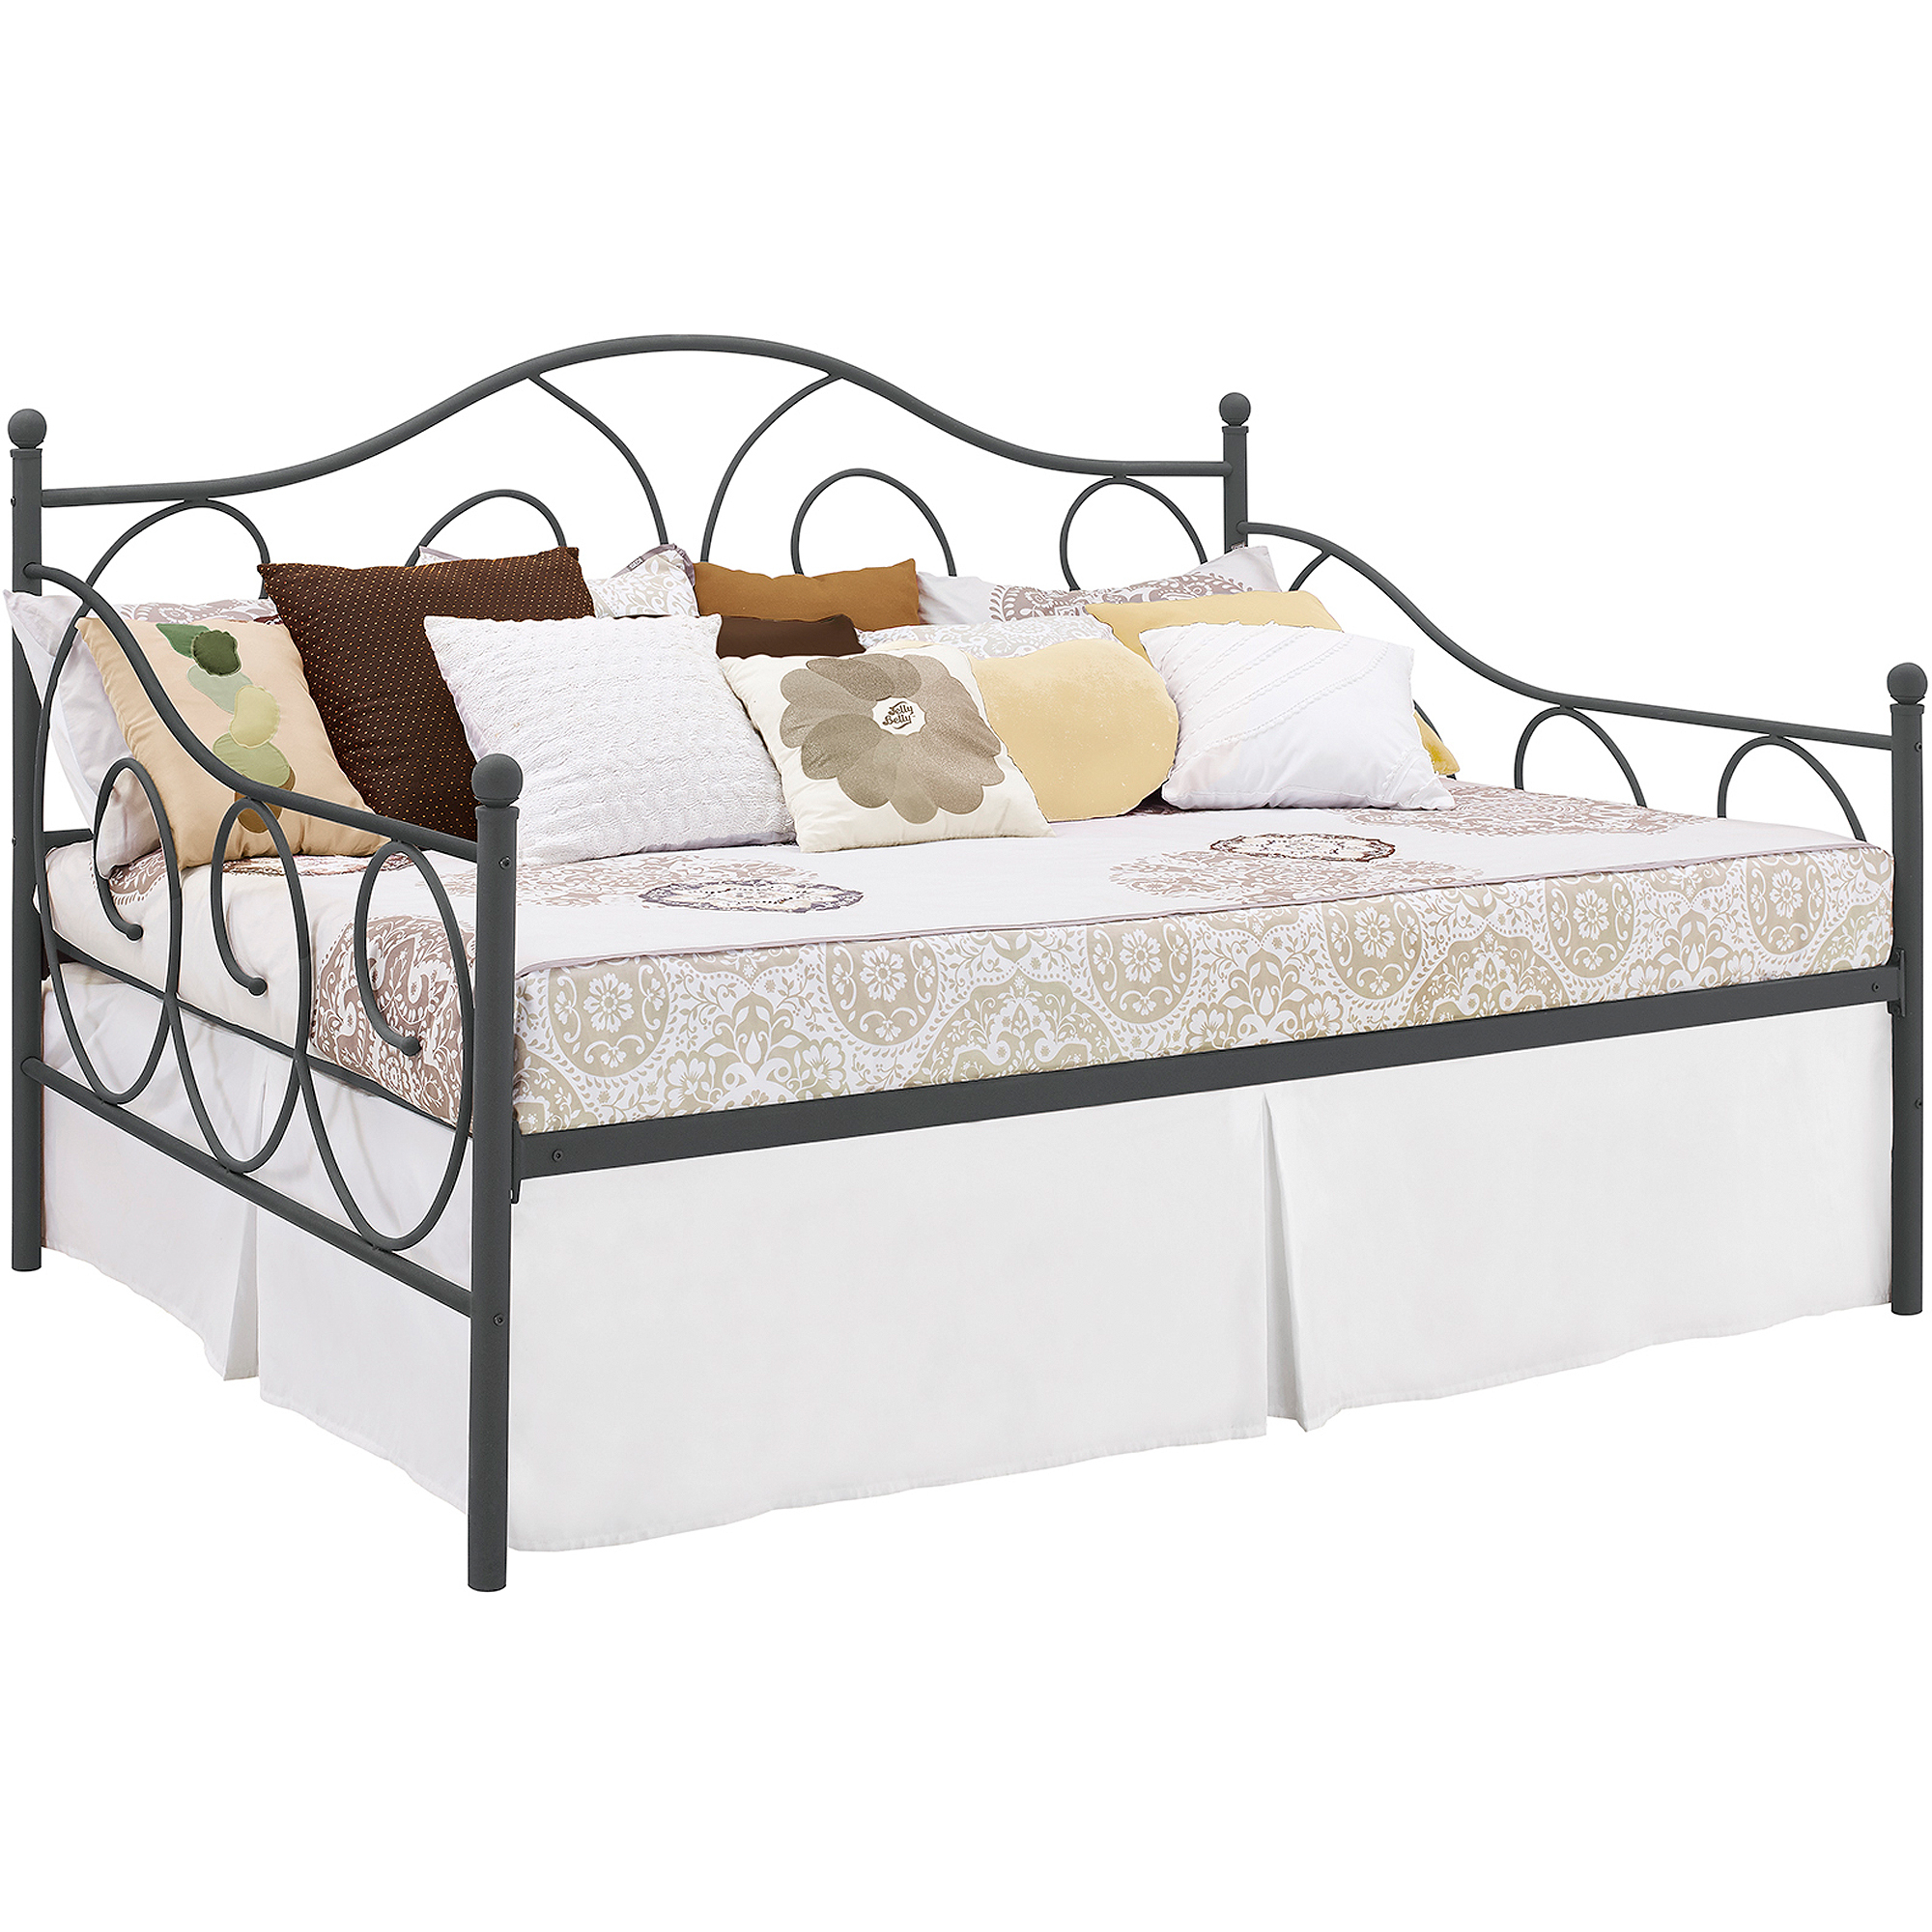 Full Size Trundle Bed Frame | Trundle Beds for Adults | Full Size Daybed with Trundle